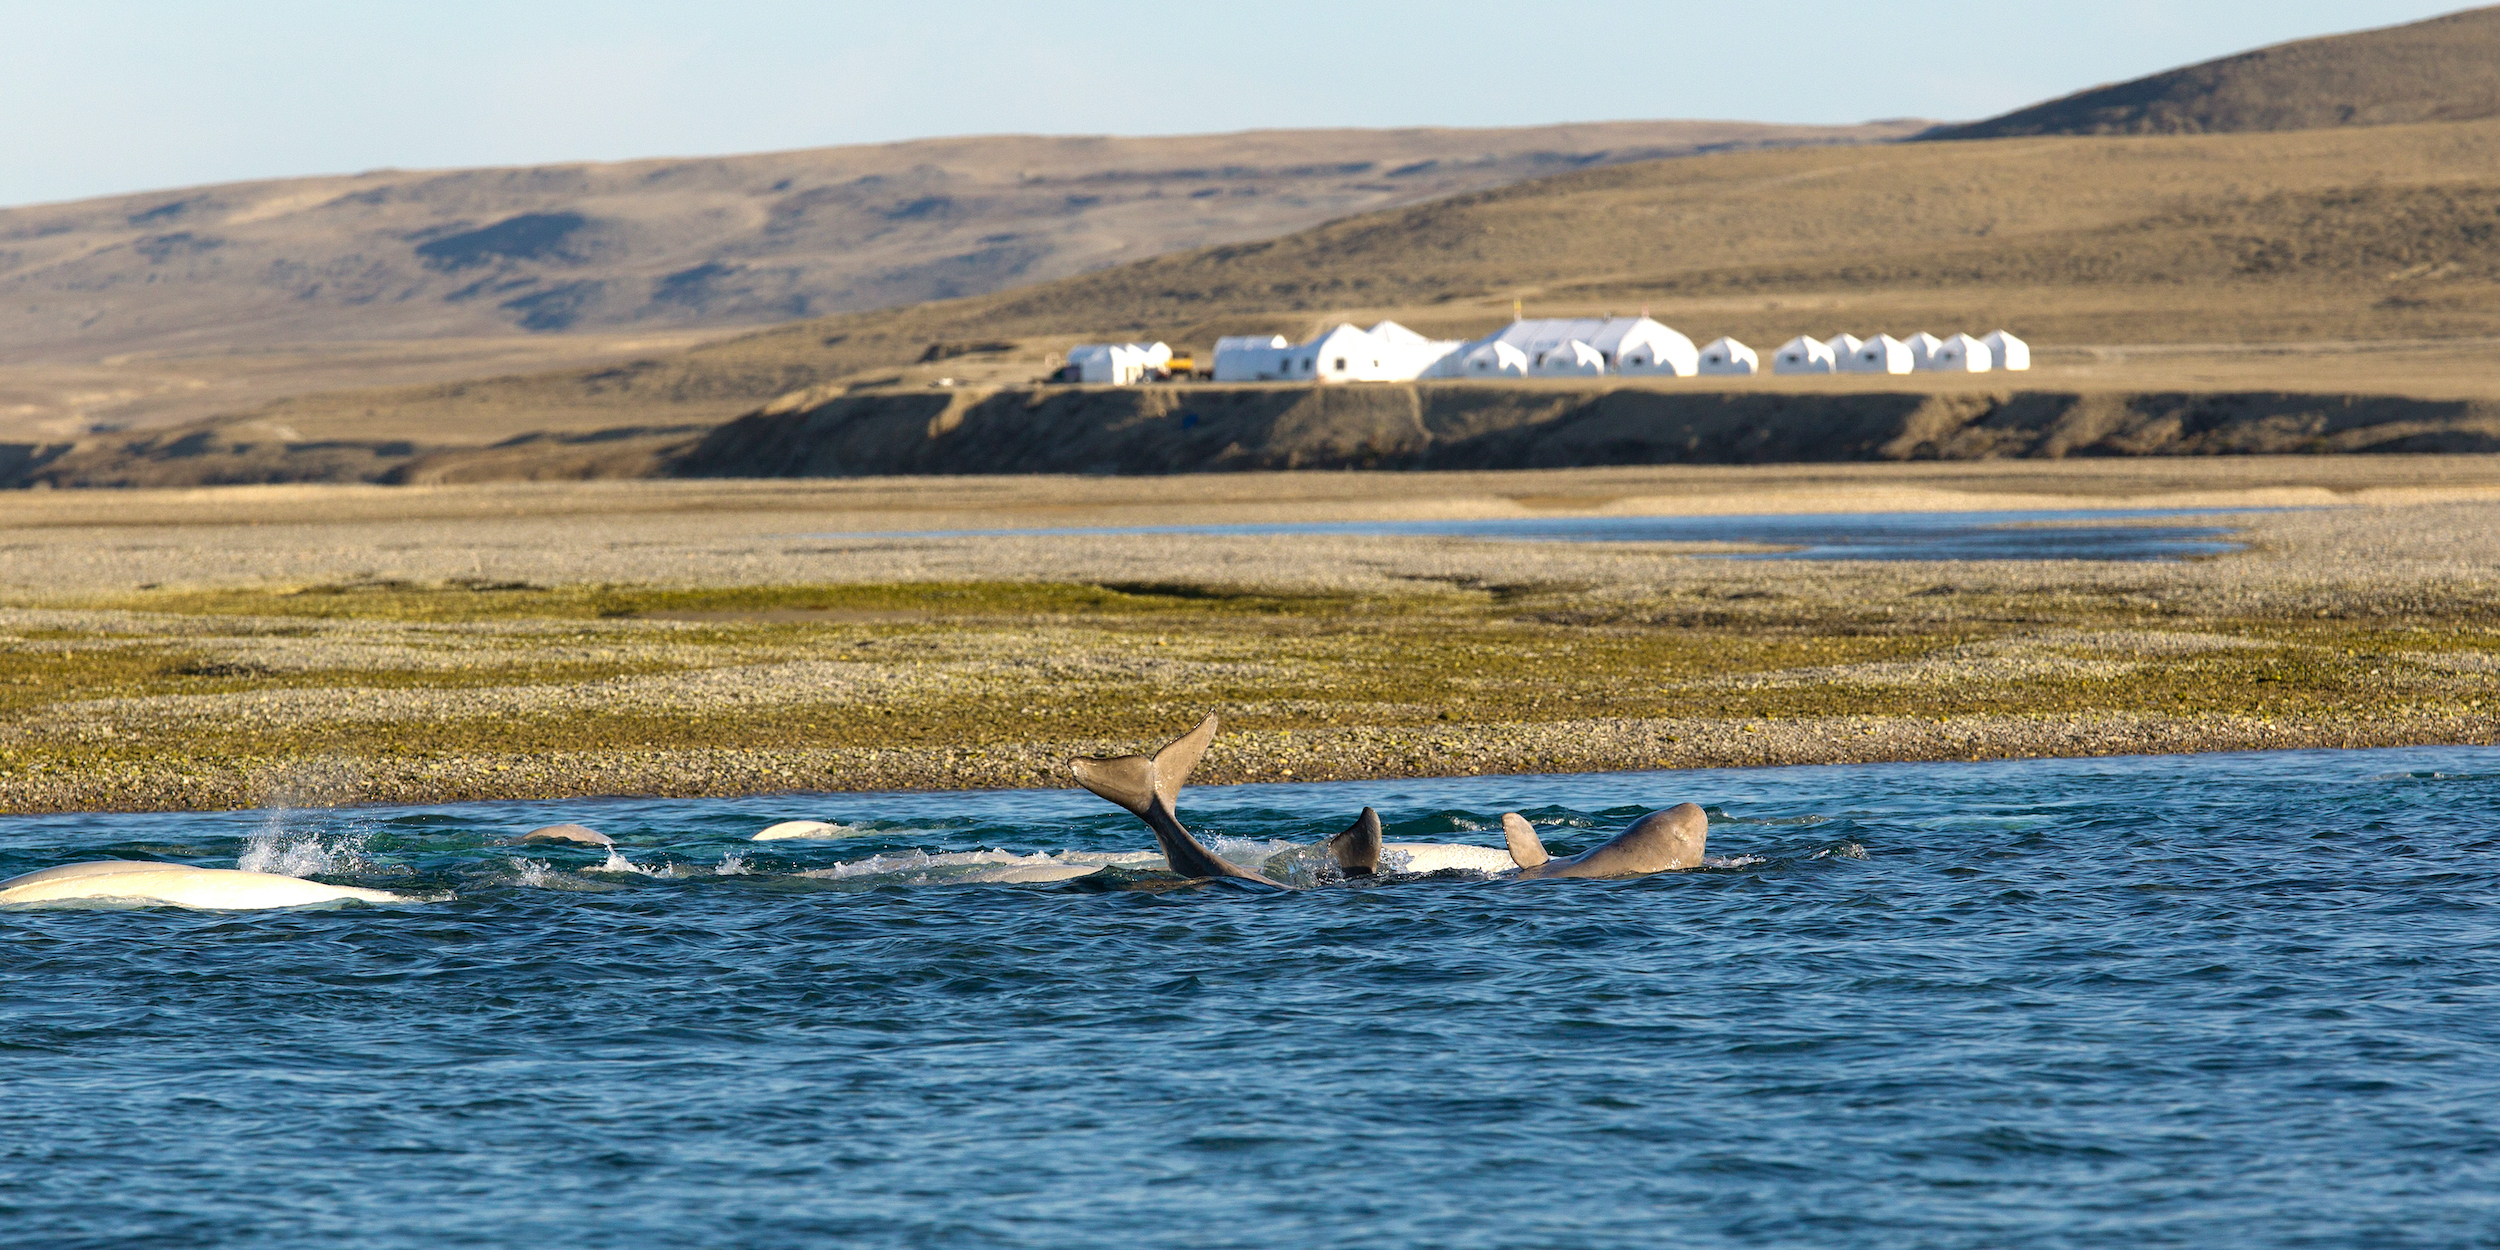 A beluga whale in Cunningham River with Arctic Watch in the background